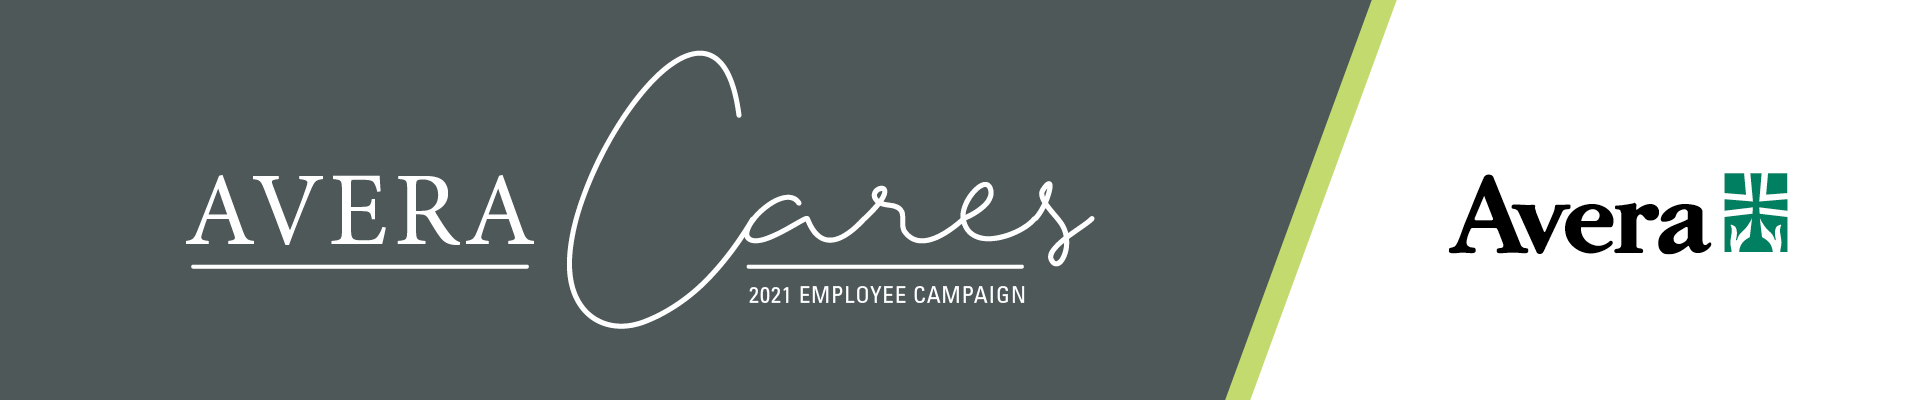 Avera Cares 2021 Employee Giving Campaign